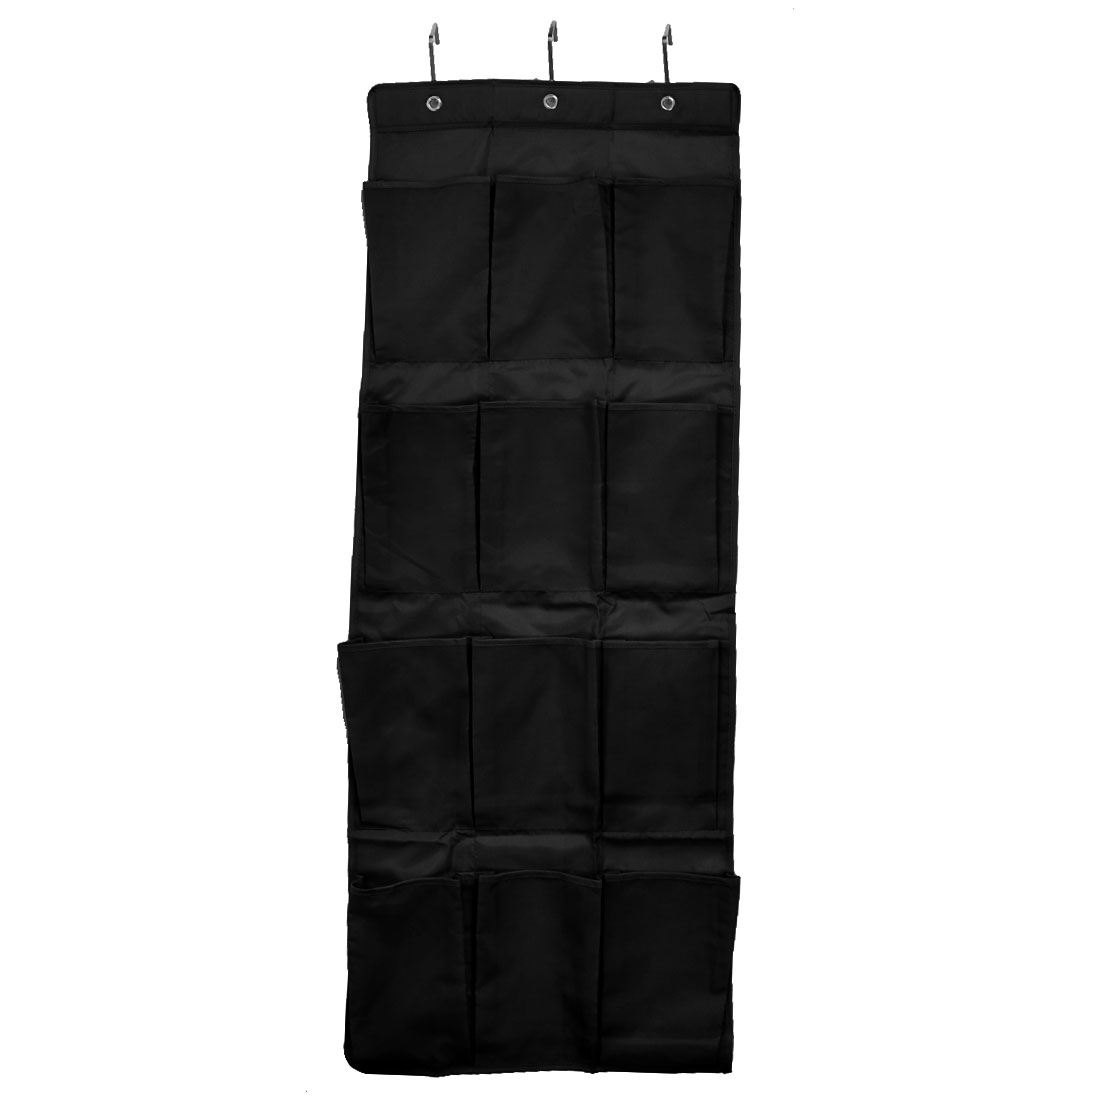 Household 12 Pockets Shoes Toiletry Cosmetic Hanging Organizer Holder Bag Black